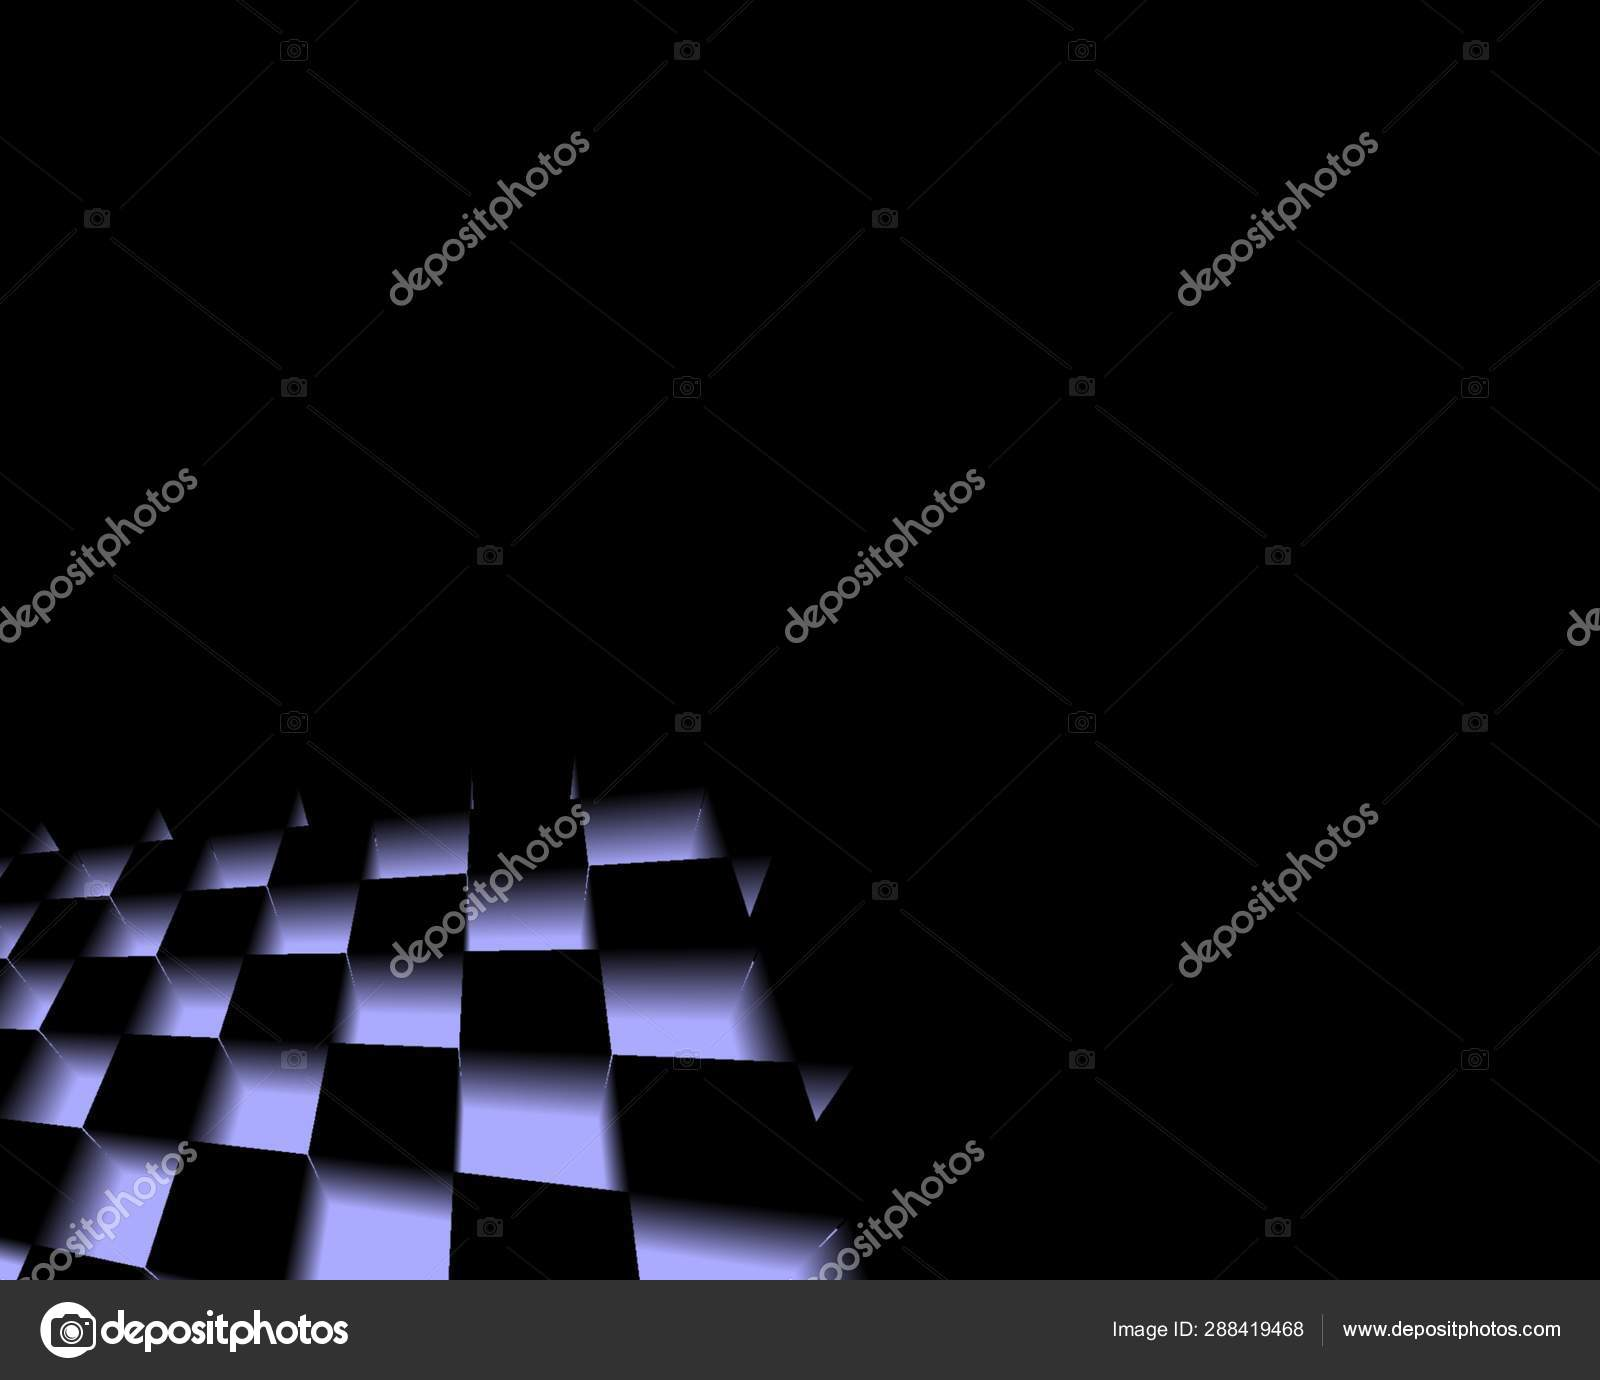 Black Purple Abstract Background Desktop Wallpaper Website Design